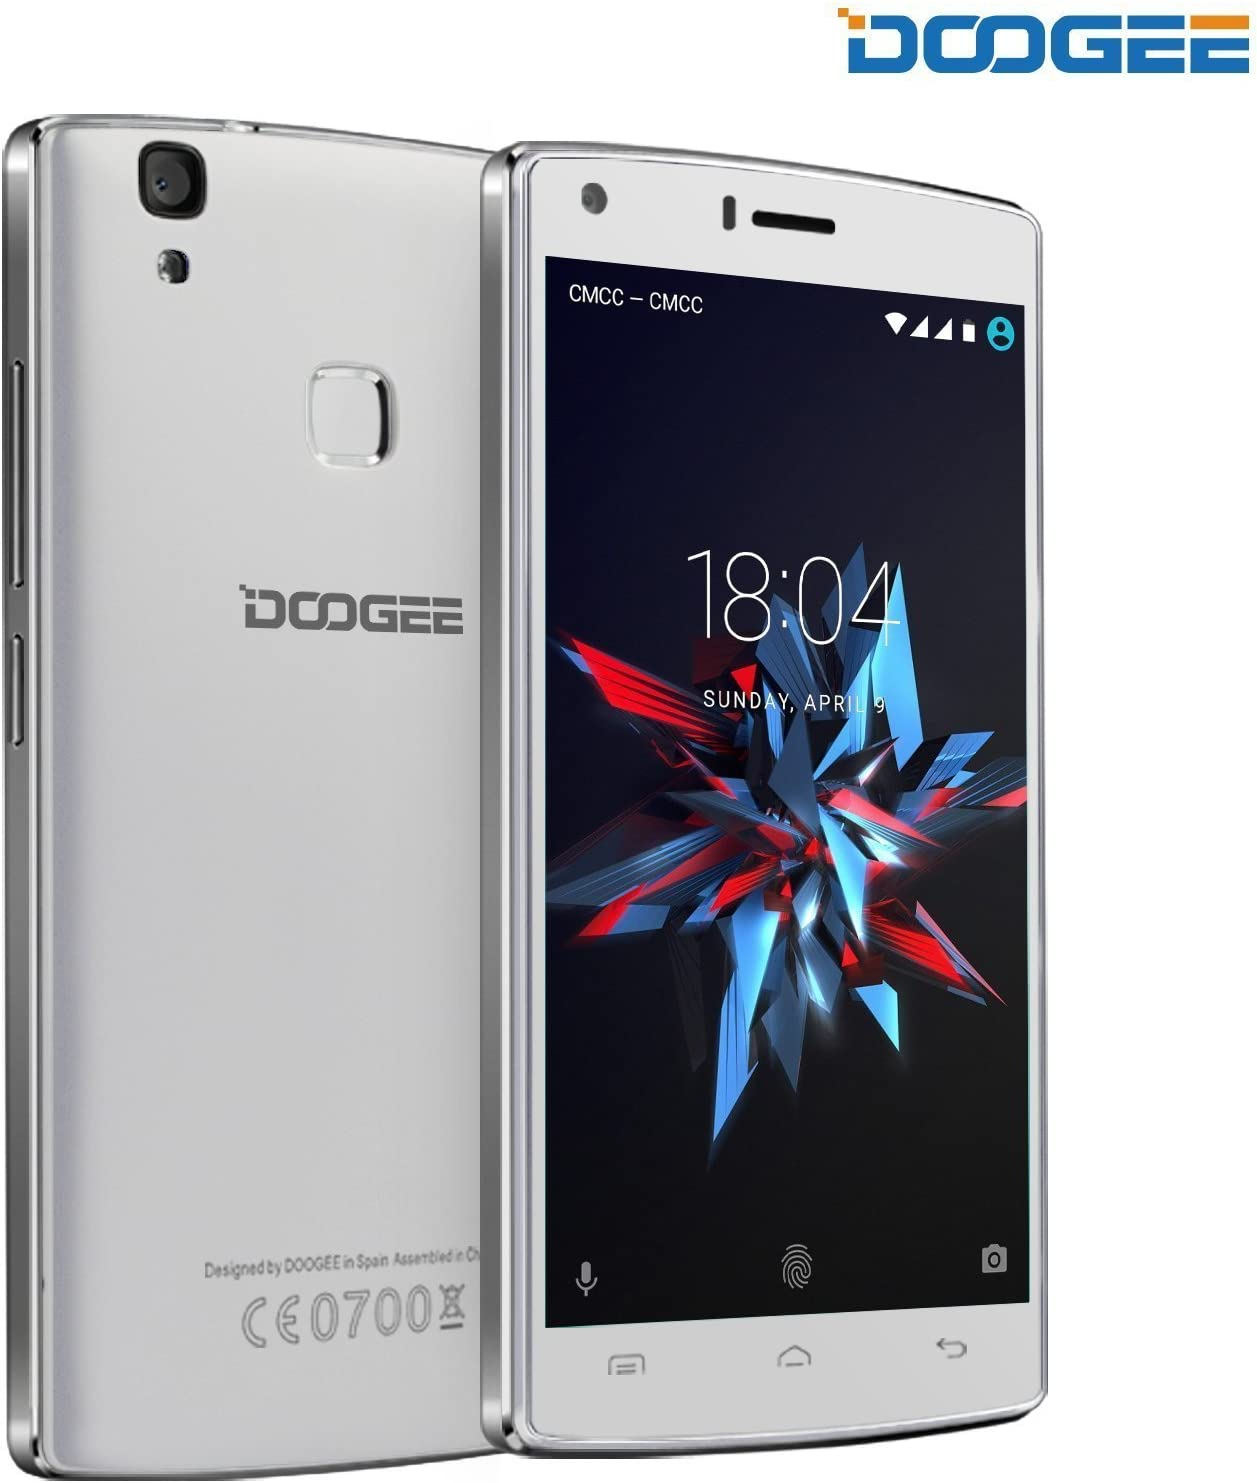 Doogee Mobile X5 Max Pro SIM doble 4G 16GB Color blanco: Amazon.es ...